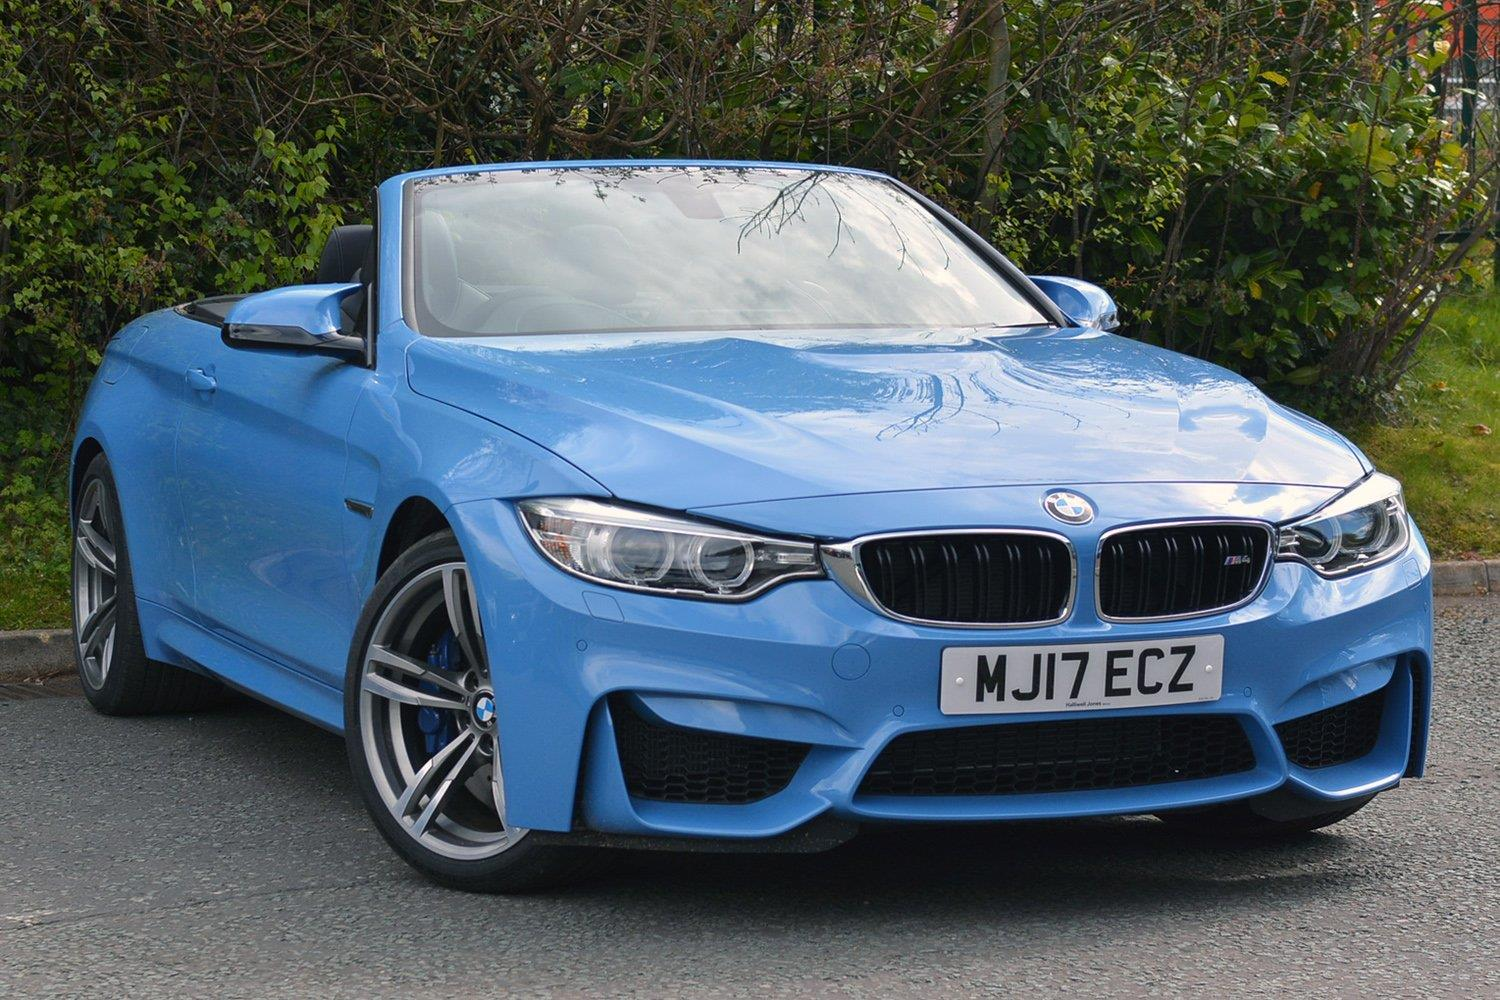 BMW M4 Convertible MJ17ECZ - Image 5